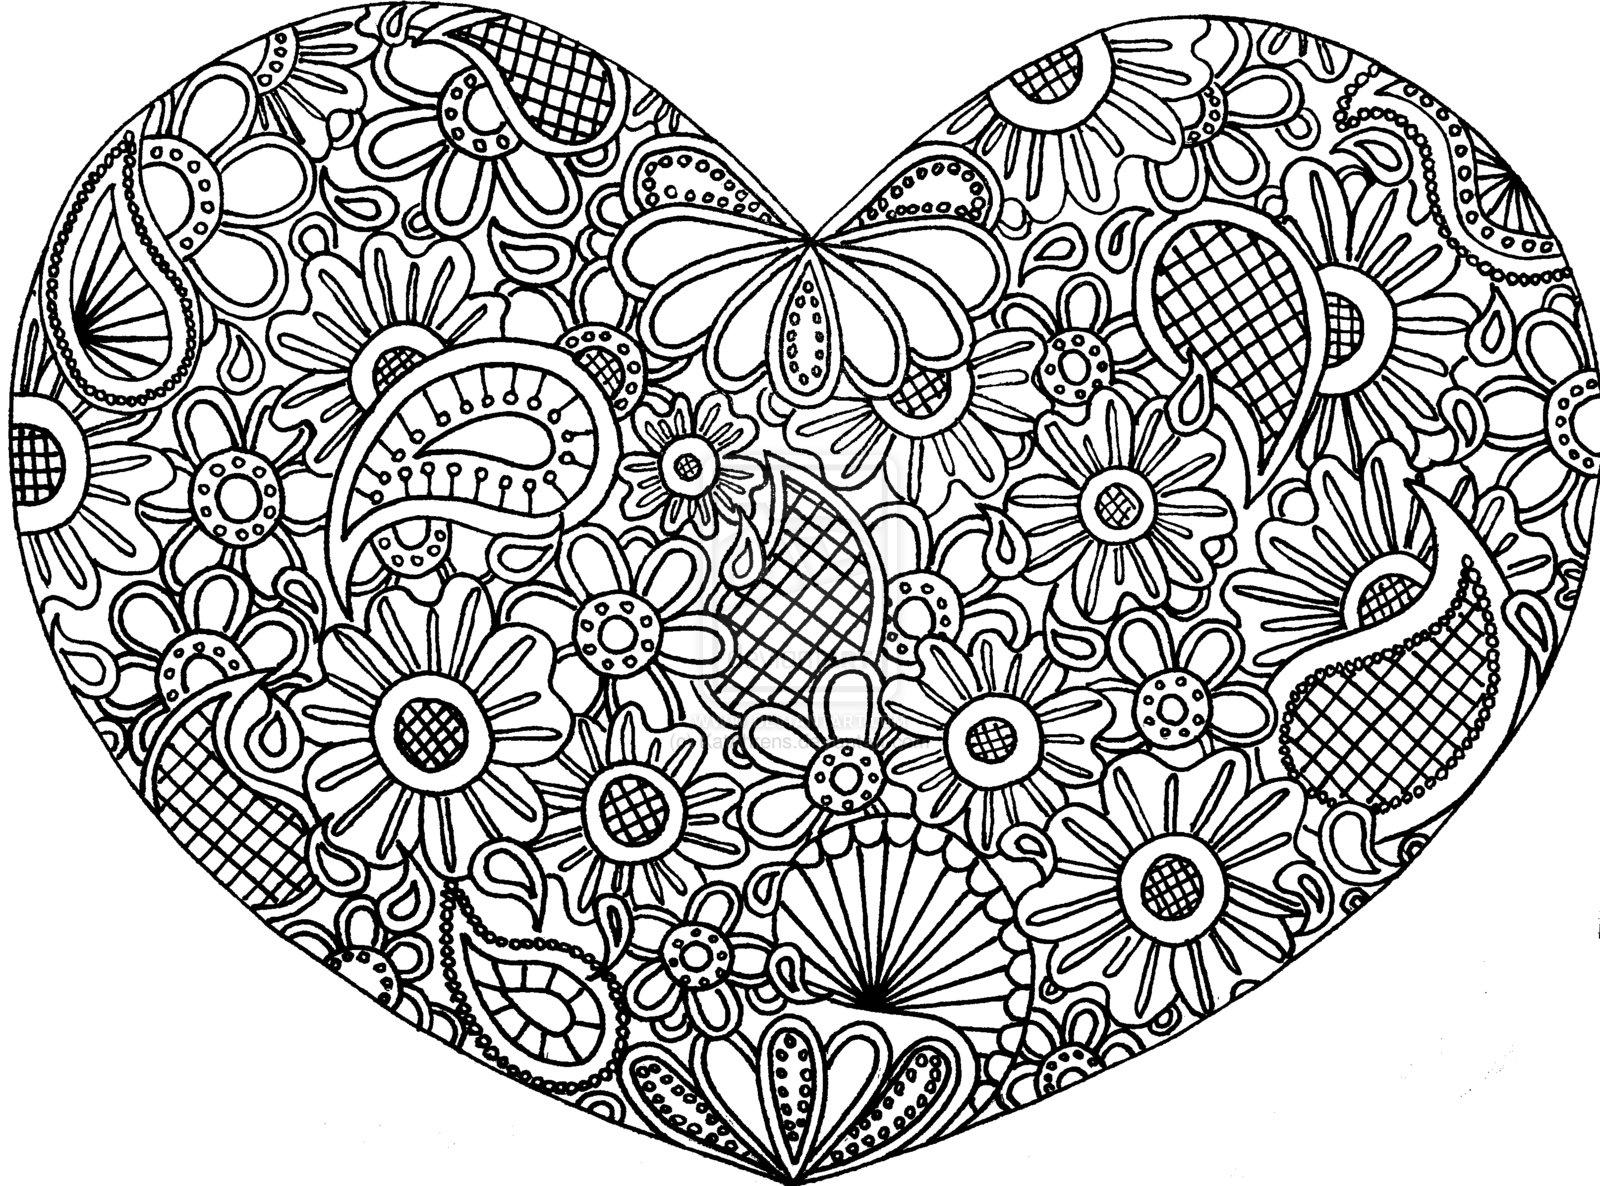 Coloring pages for adults zentangle - Colored Zentangles Hearts Free Doodle Art Coloring Pages Coloring Pages Pictures Imagixs